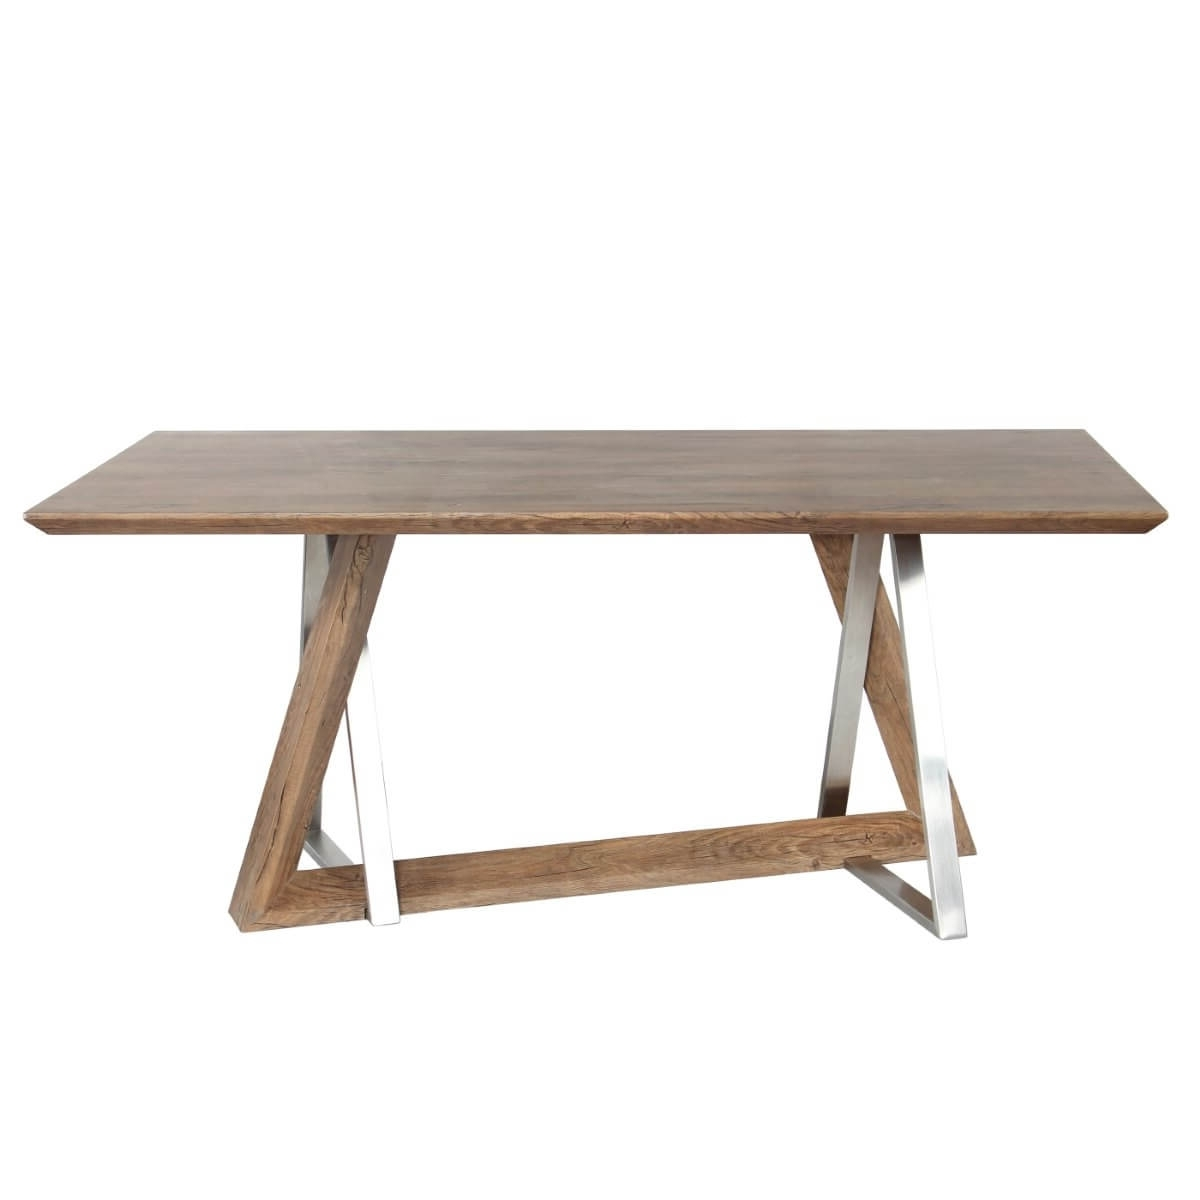 180Cm Dining Tables Within Most Recently Released Dining Tables – Industrial Style Wood Dining Table 901 15  (View 20 of 25)